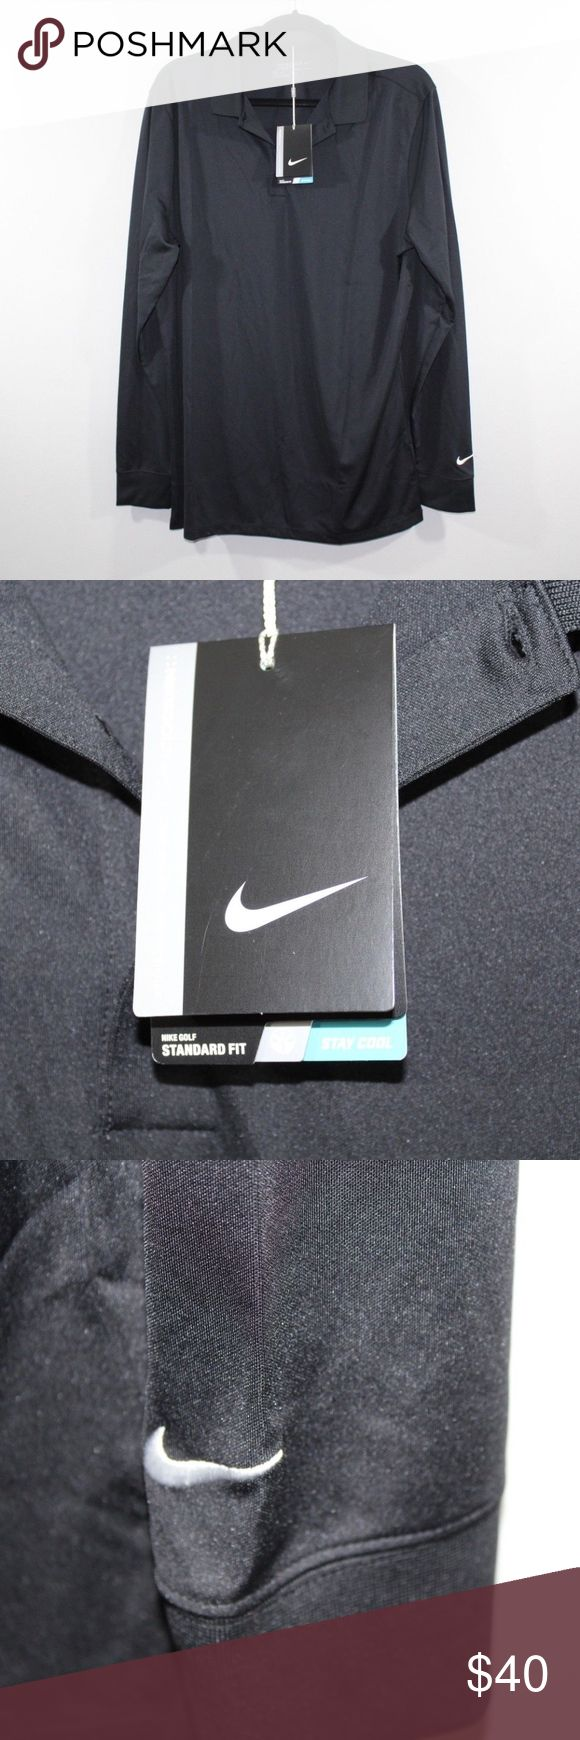 New Nike Golf Standard Fit Long Sleeve Polo Shirt Nike Golf Standard Fit Long Sleeve Golf Polo Shirt  Golf Polo  New  Black   The size is Large and the measurements are 24 inches underarm to underarm and 31 inches shoulder to base.   Polyester   Check out my other items in my store Vogue Squared!   M10 Nike Shirts Polos